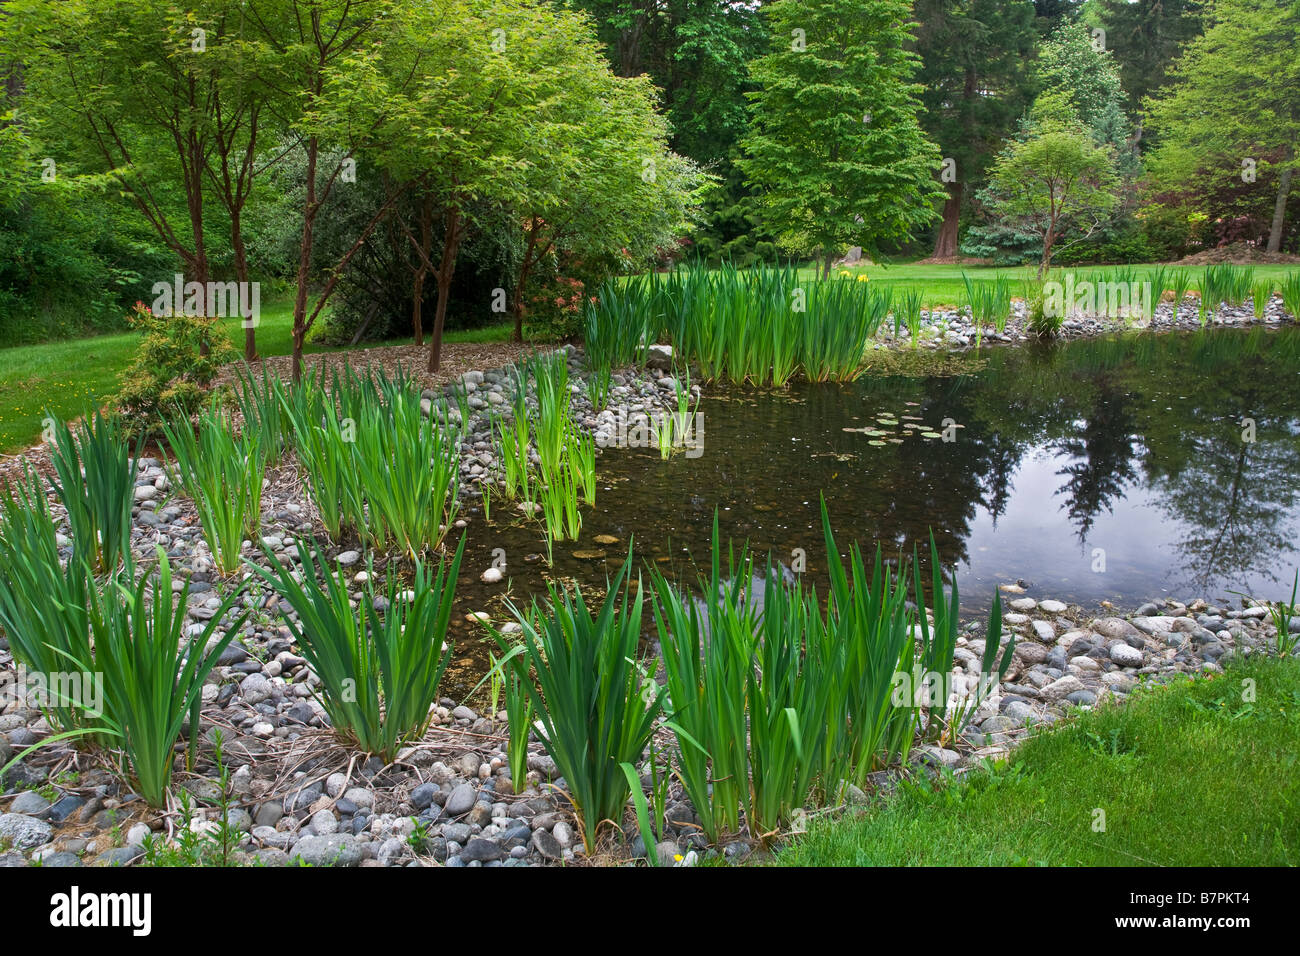 Vashon Island WA Pacific northwest garden pond with yellow flag iris along the margins - Stock Image